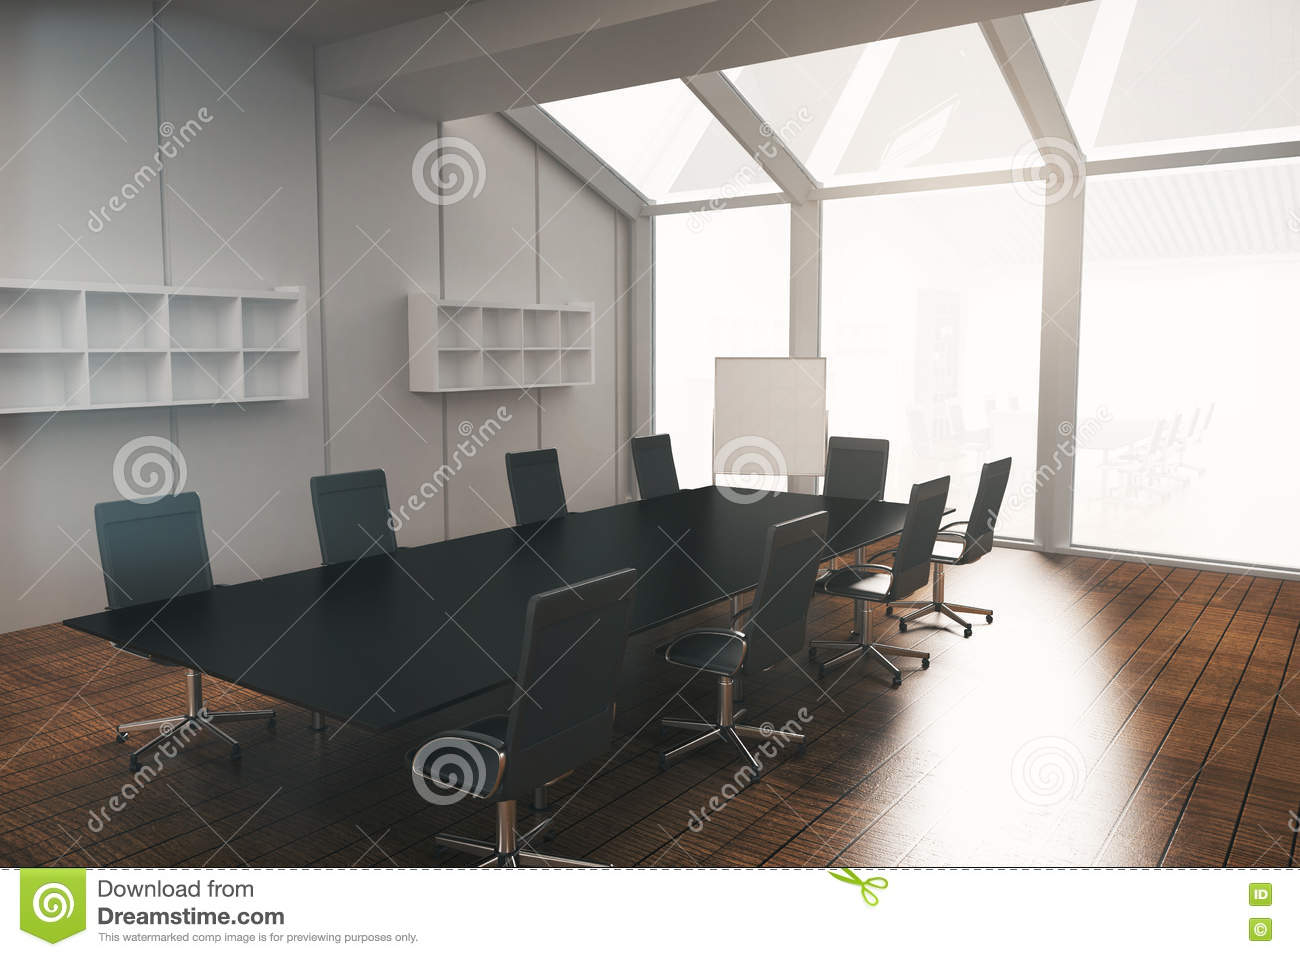 Rc Furniture Interior Design Stock Dealer ~ Interior with whiteboard and furniture royalty free stock